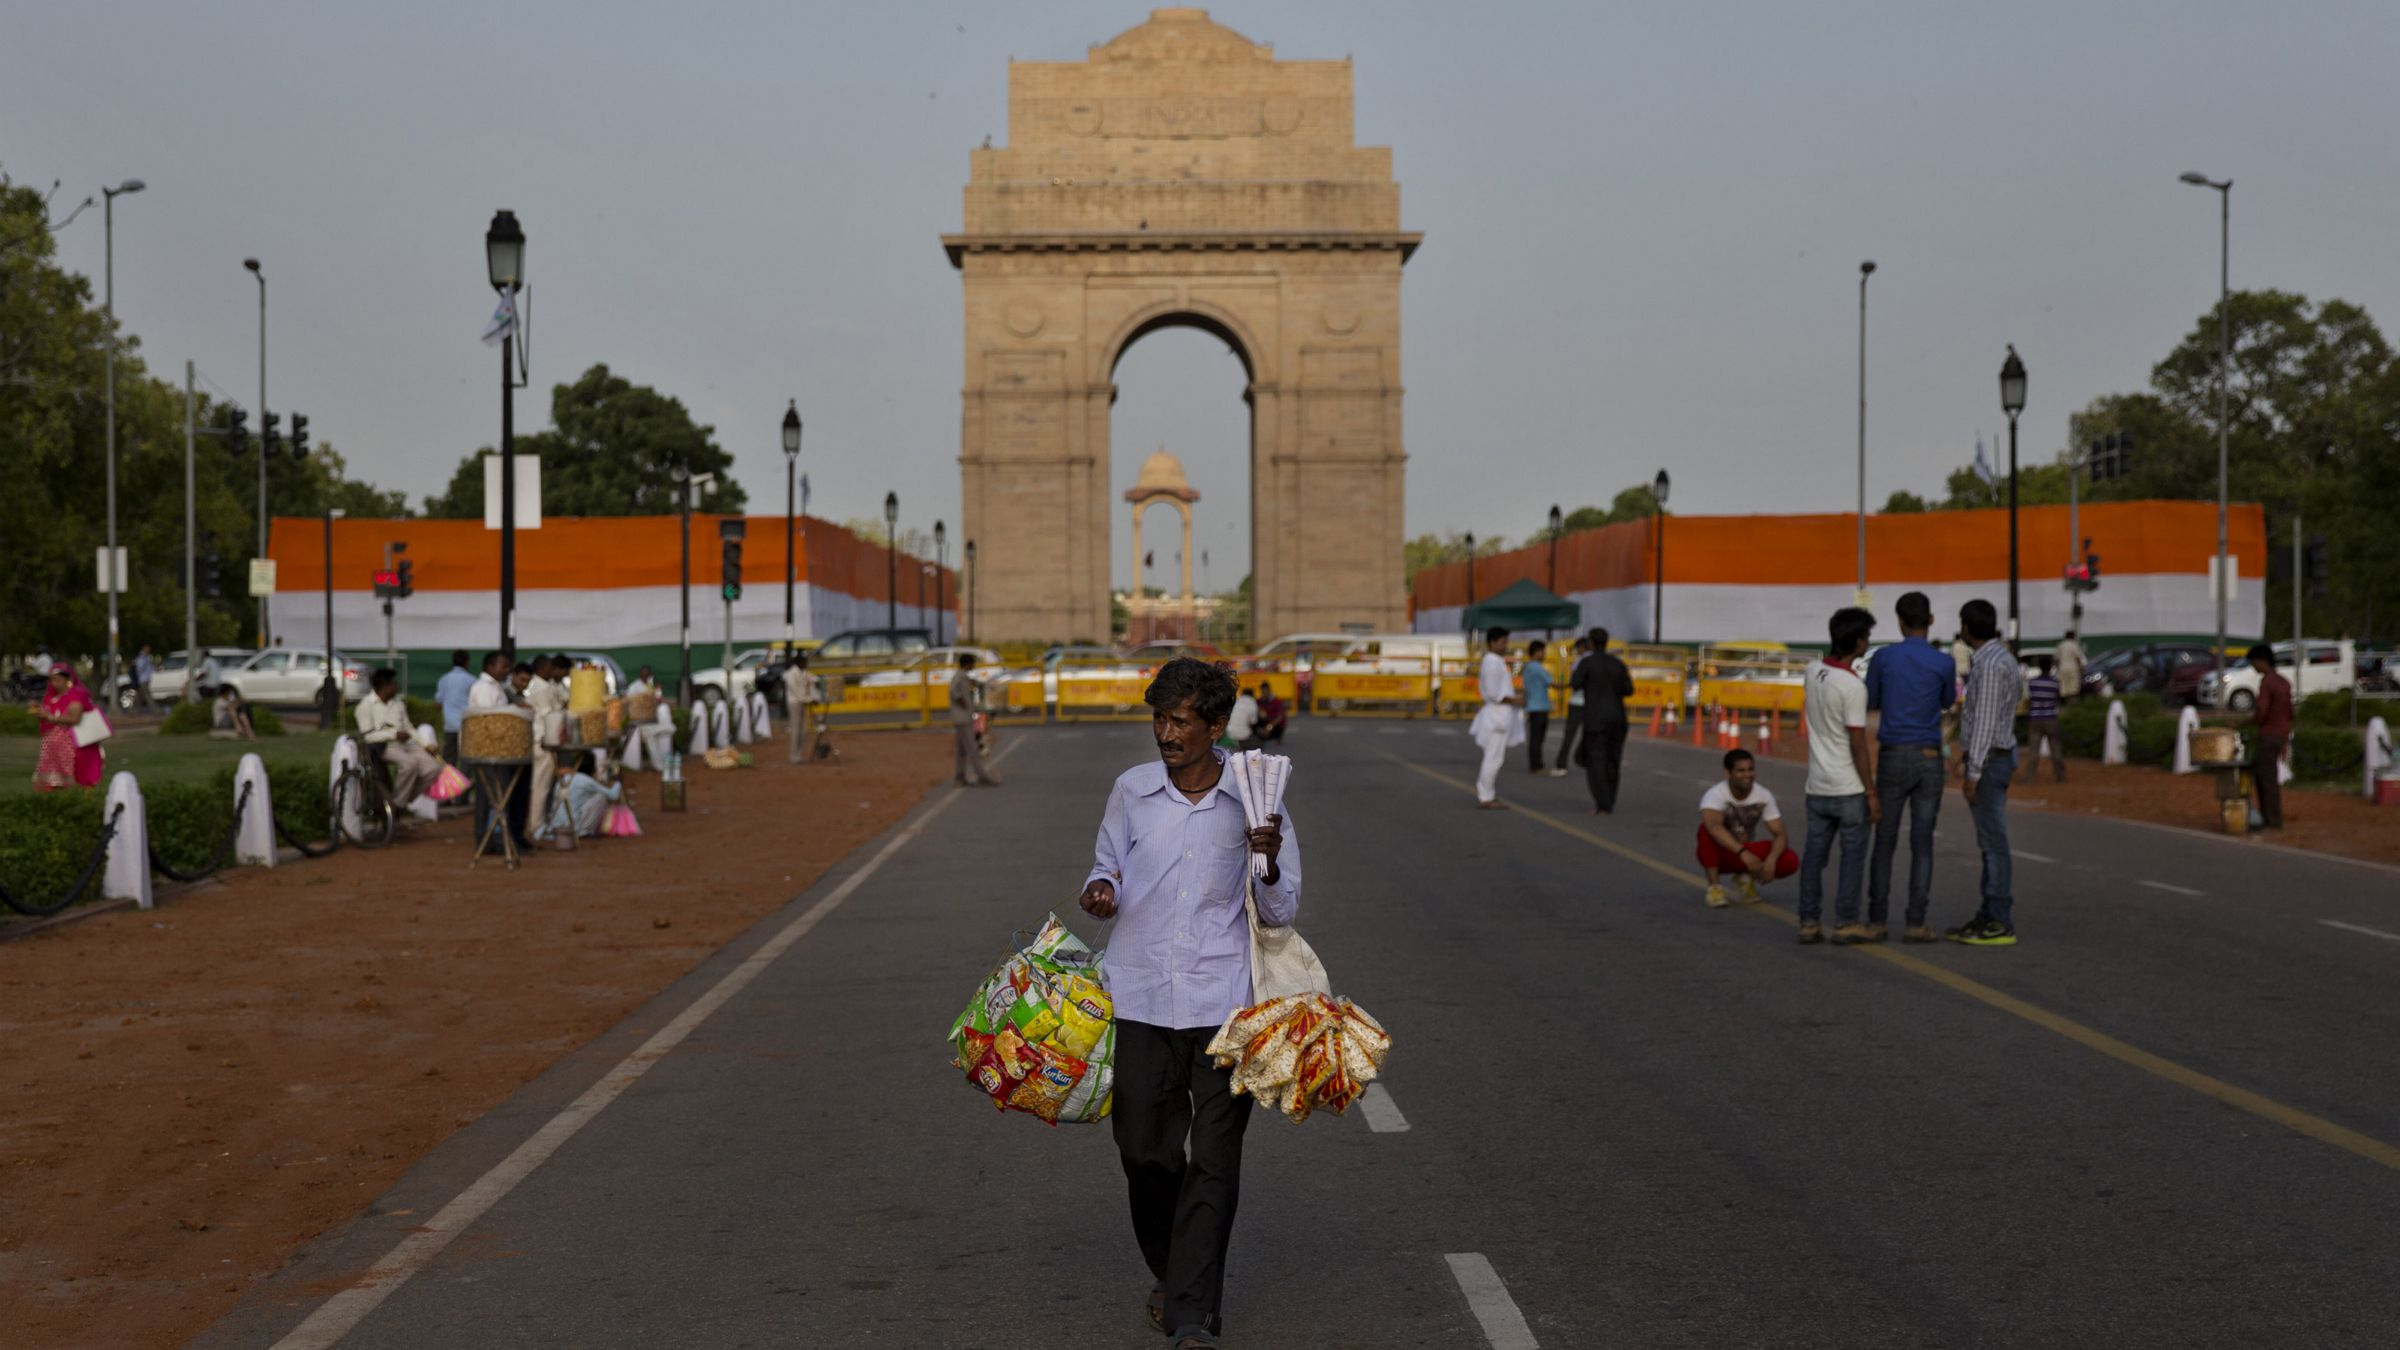 An Indian vendor sells snacks in front of the landmark India Gate war memorial, decorated in the colors of the Indian national flag, on the eve of the country's Independence Day in New Delhi, India, Thursday, Aug. 14, 2014. India celebrates its 1947 independence from British colonial rule on Aug. 15.